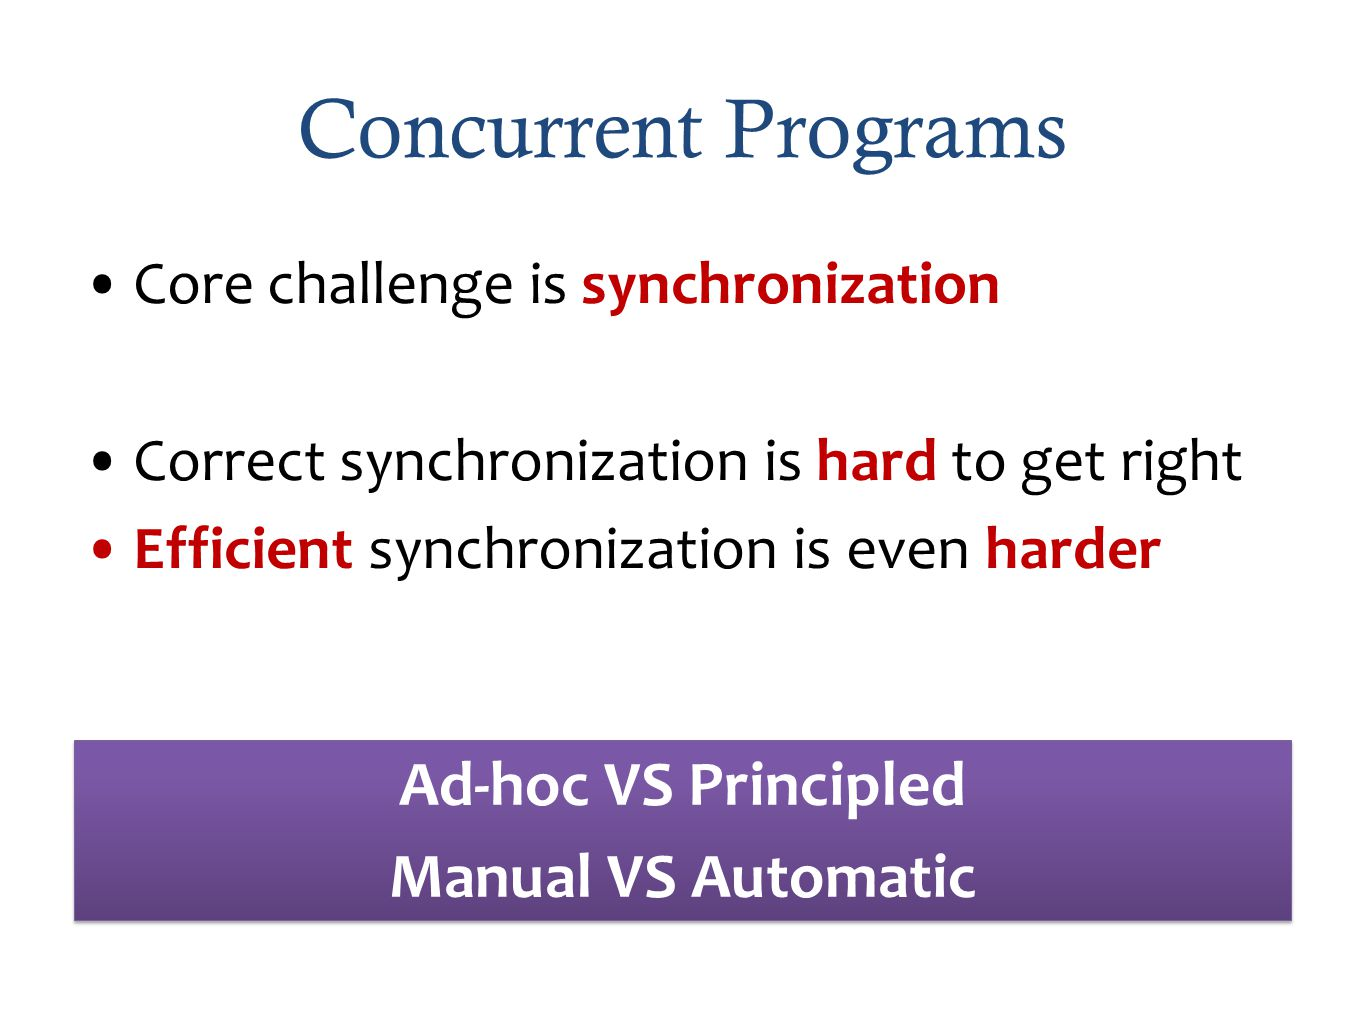 Concurrent Programs Core challenge is synchronization Correct synchronization is hard to get right Efficient synchronization is even harder Ad-hoc VS Principled Manual VS Automatic Ad-hoc VS Principled Manual VS Automatic